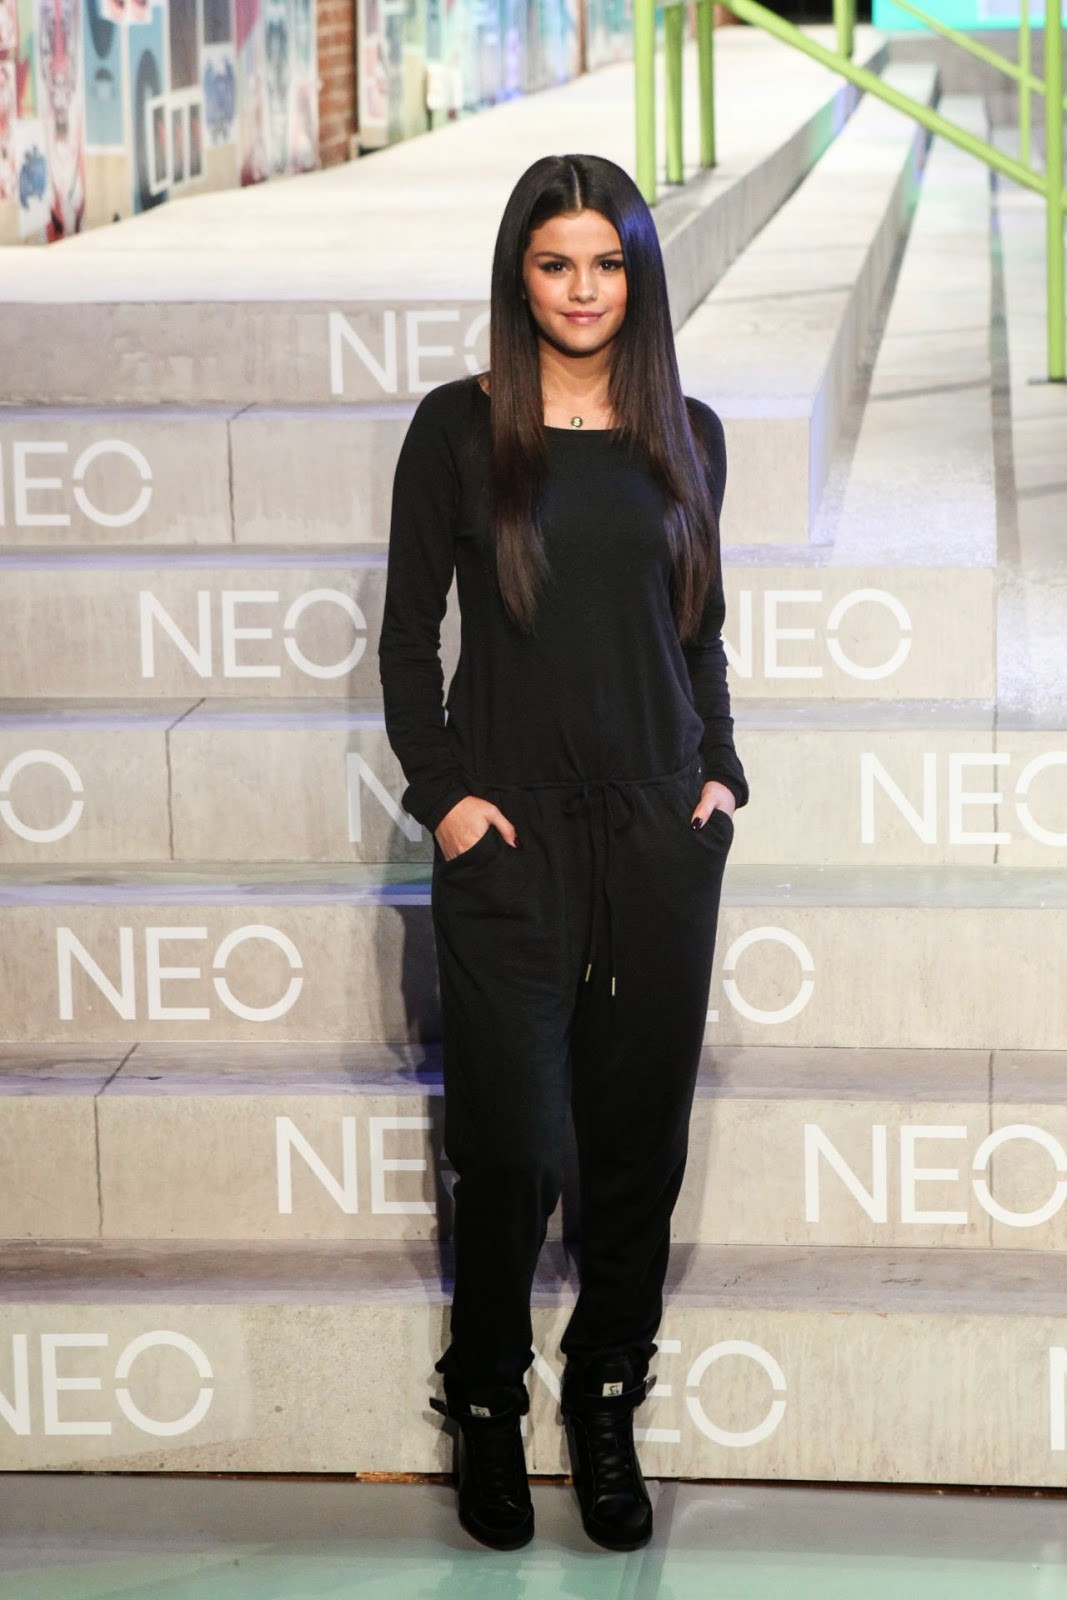 Selena Gomez flaunts sleek hair at the Adidas NEO Fashion Show in NYC